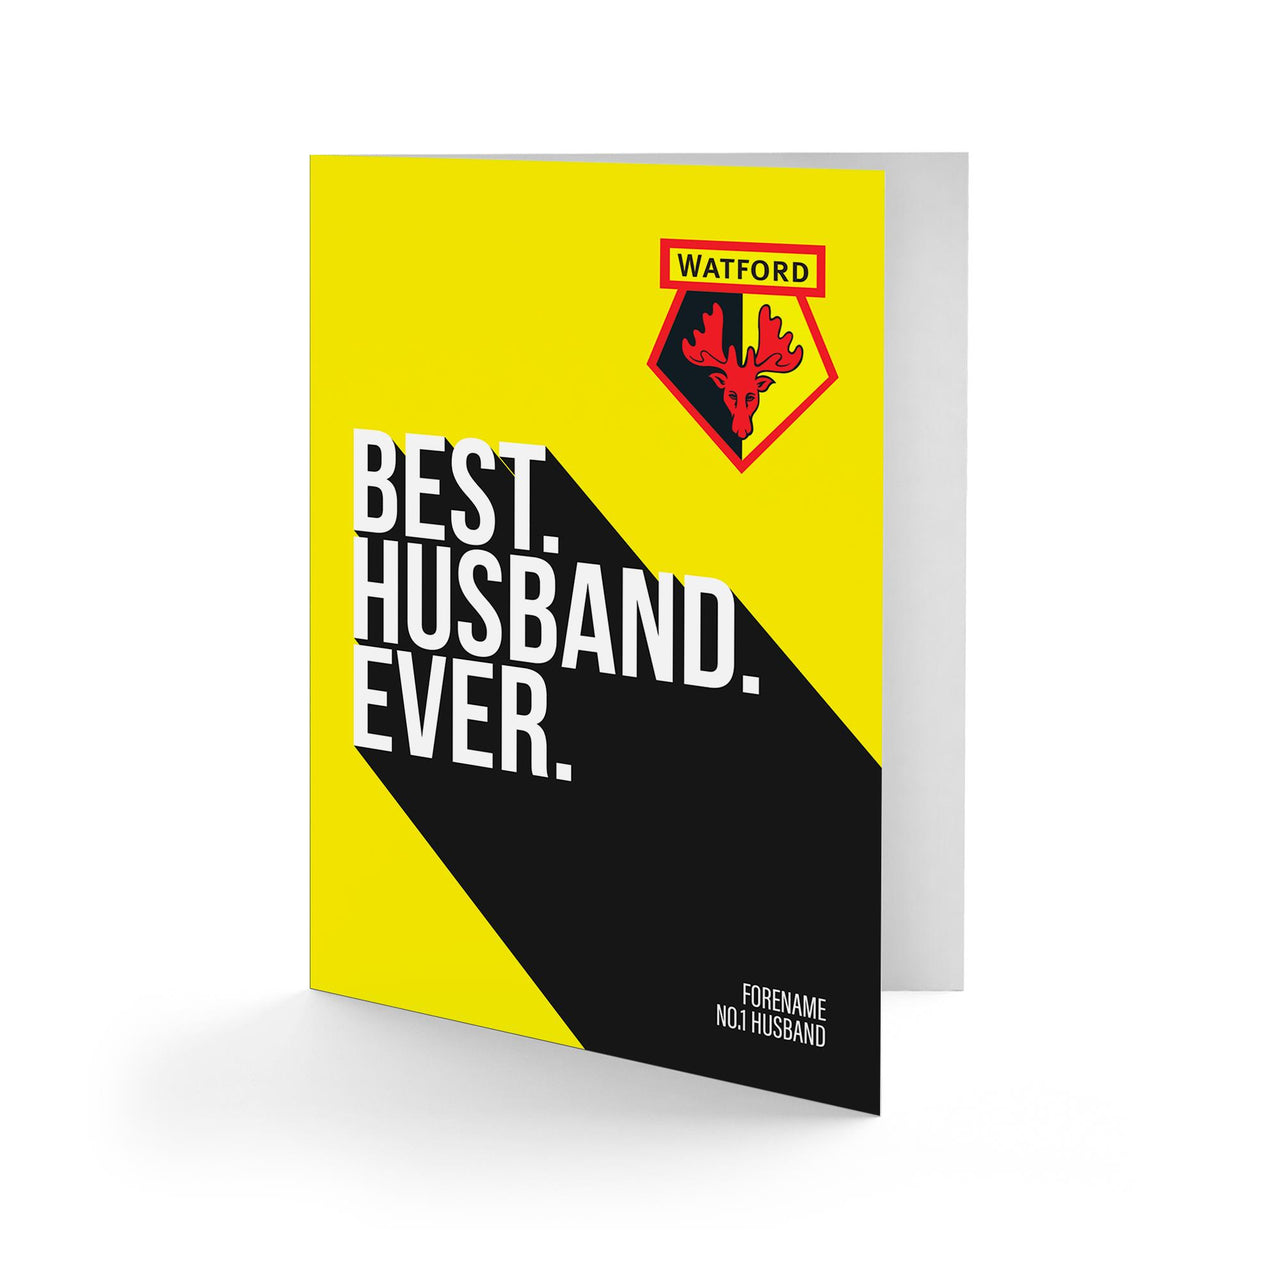 Watford Best Husband Ever Card